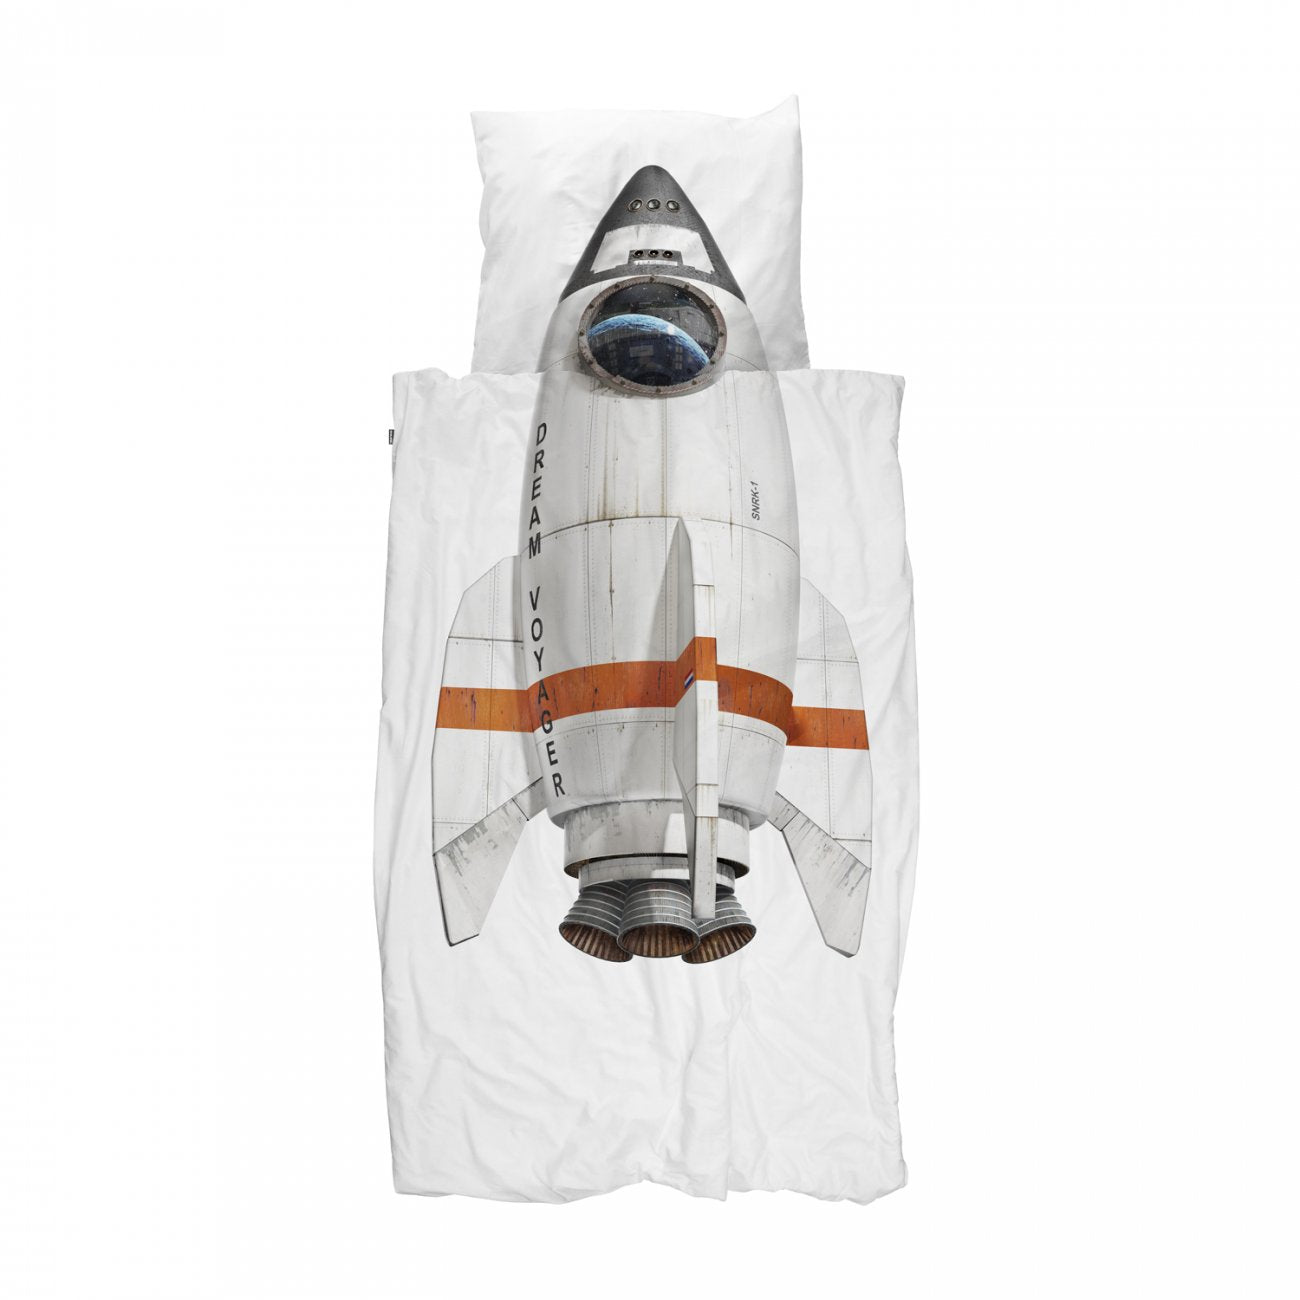 Rocket duvet cover